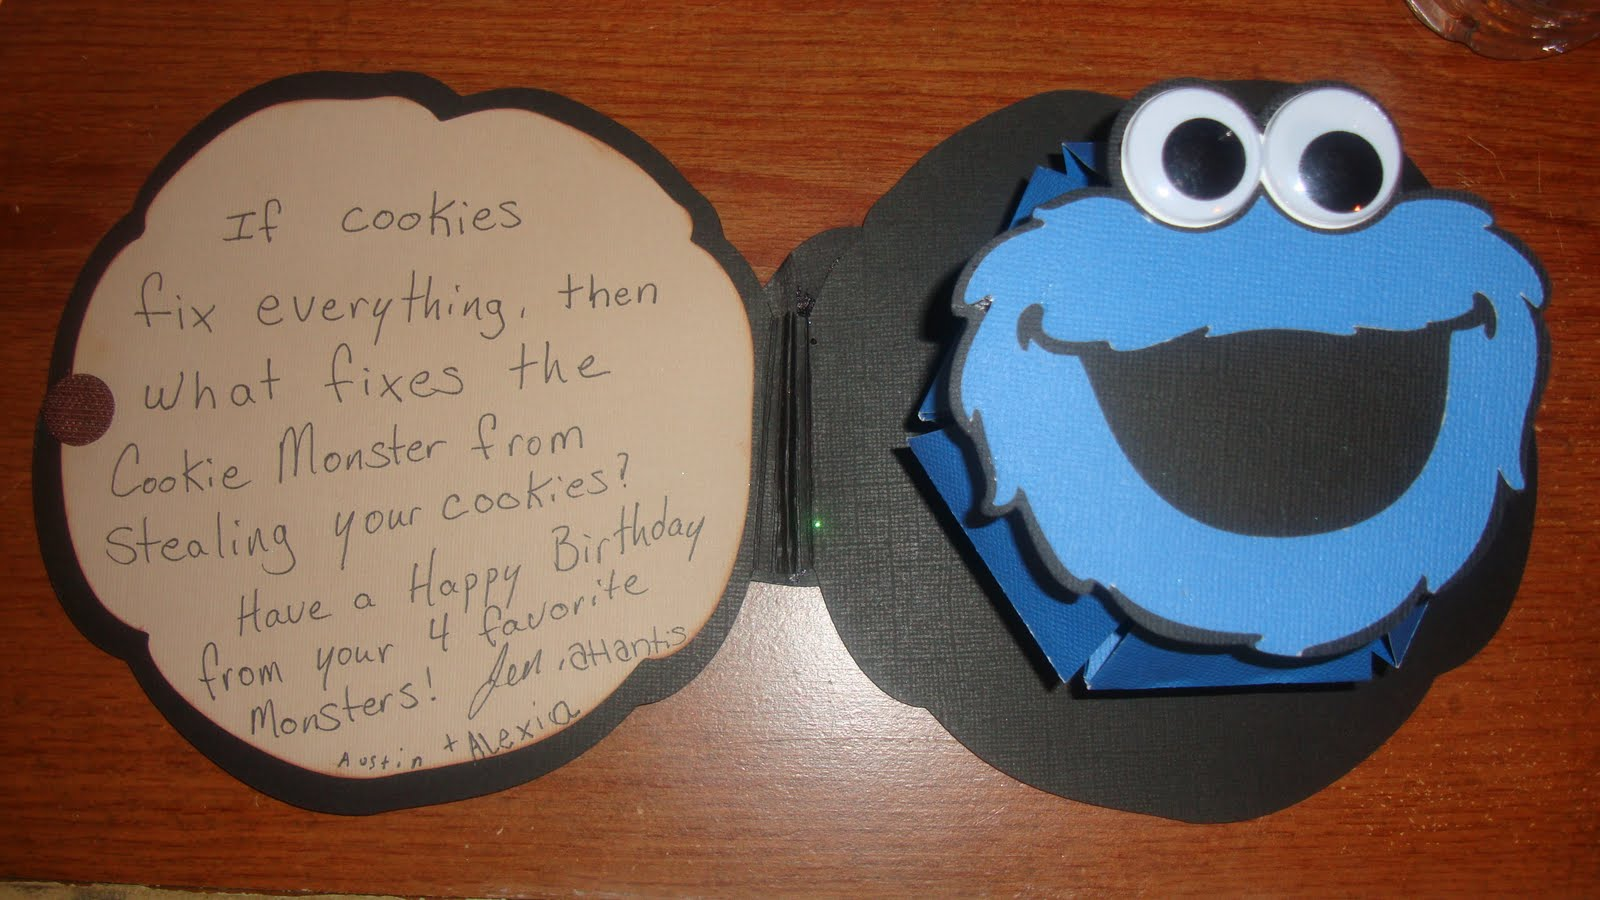 Night cricut cookie monster pop up card i am the cookie monster in my house i am always stealing my husbands cookies from him so i thought this would be a cute card to make for his birthday bookmarktalkfo Choice Image